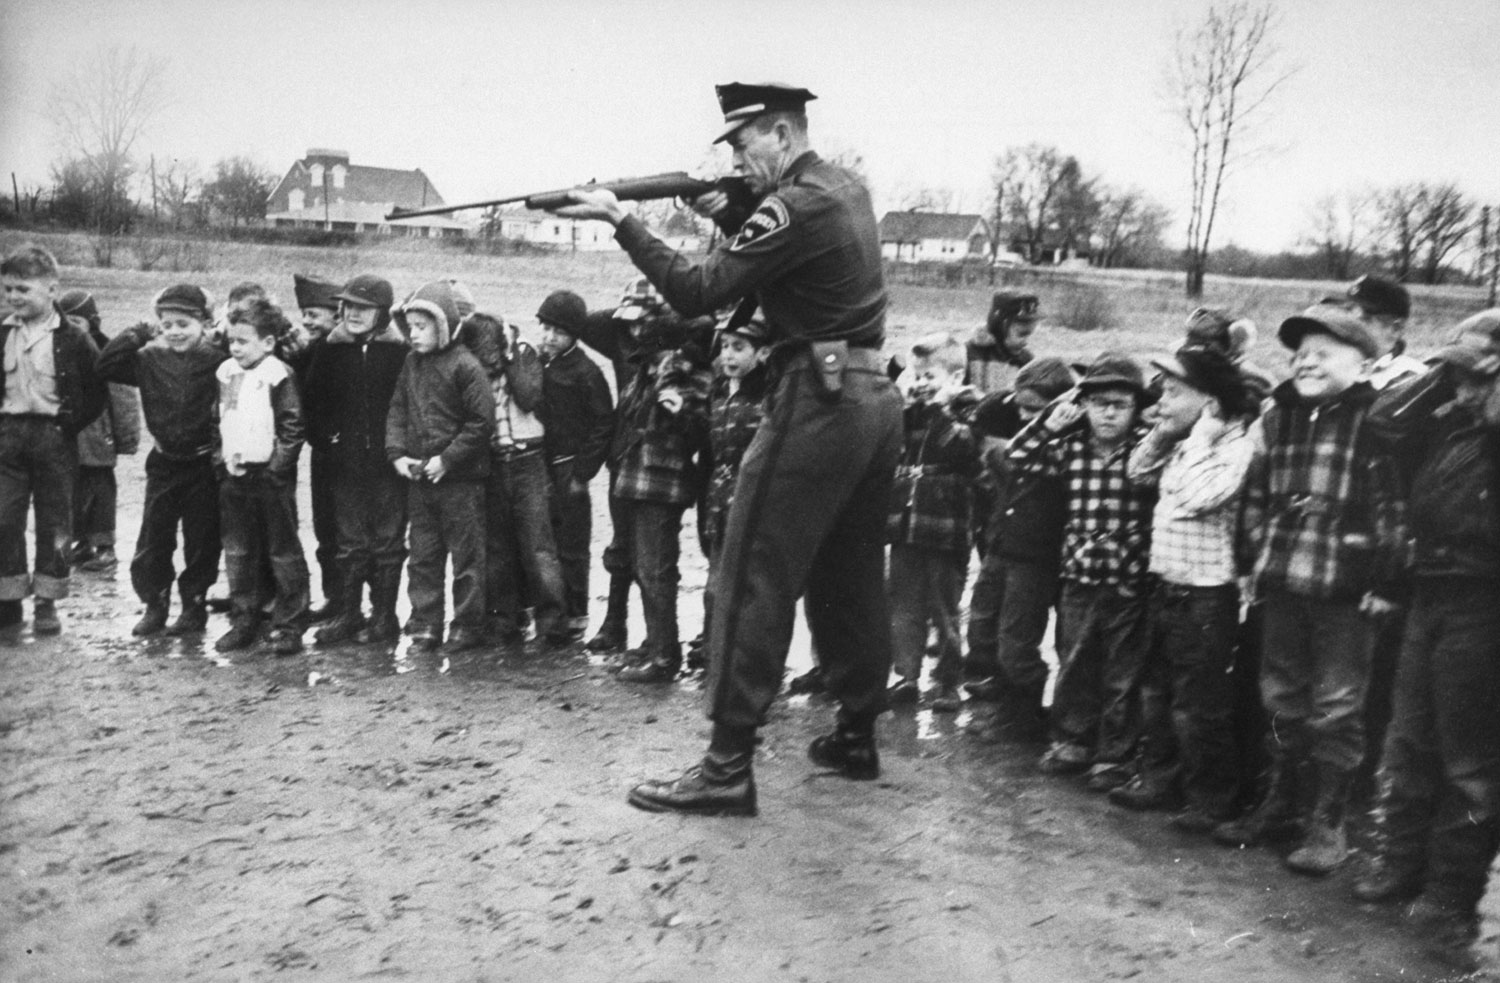 <b>Caption from LIFE.</b> Cringing class holds breath and ears as Rankin aims 30-30 rifle at can of water in demonstration to impress kids with the destructive power of guns.